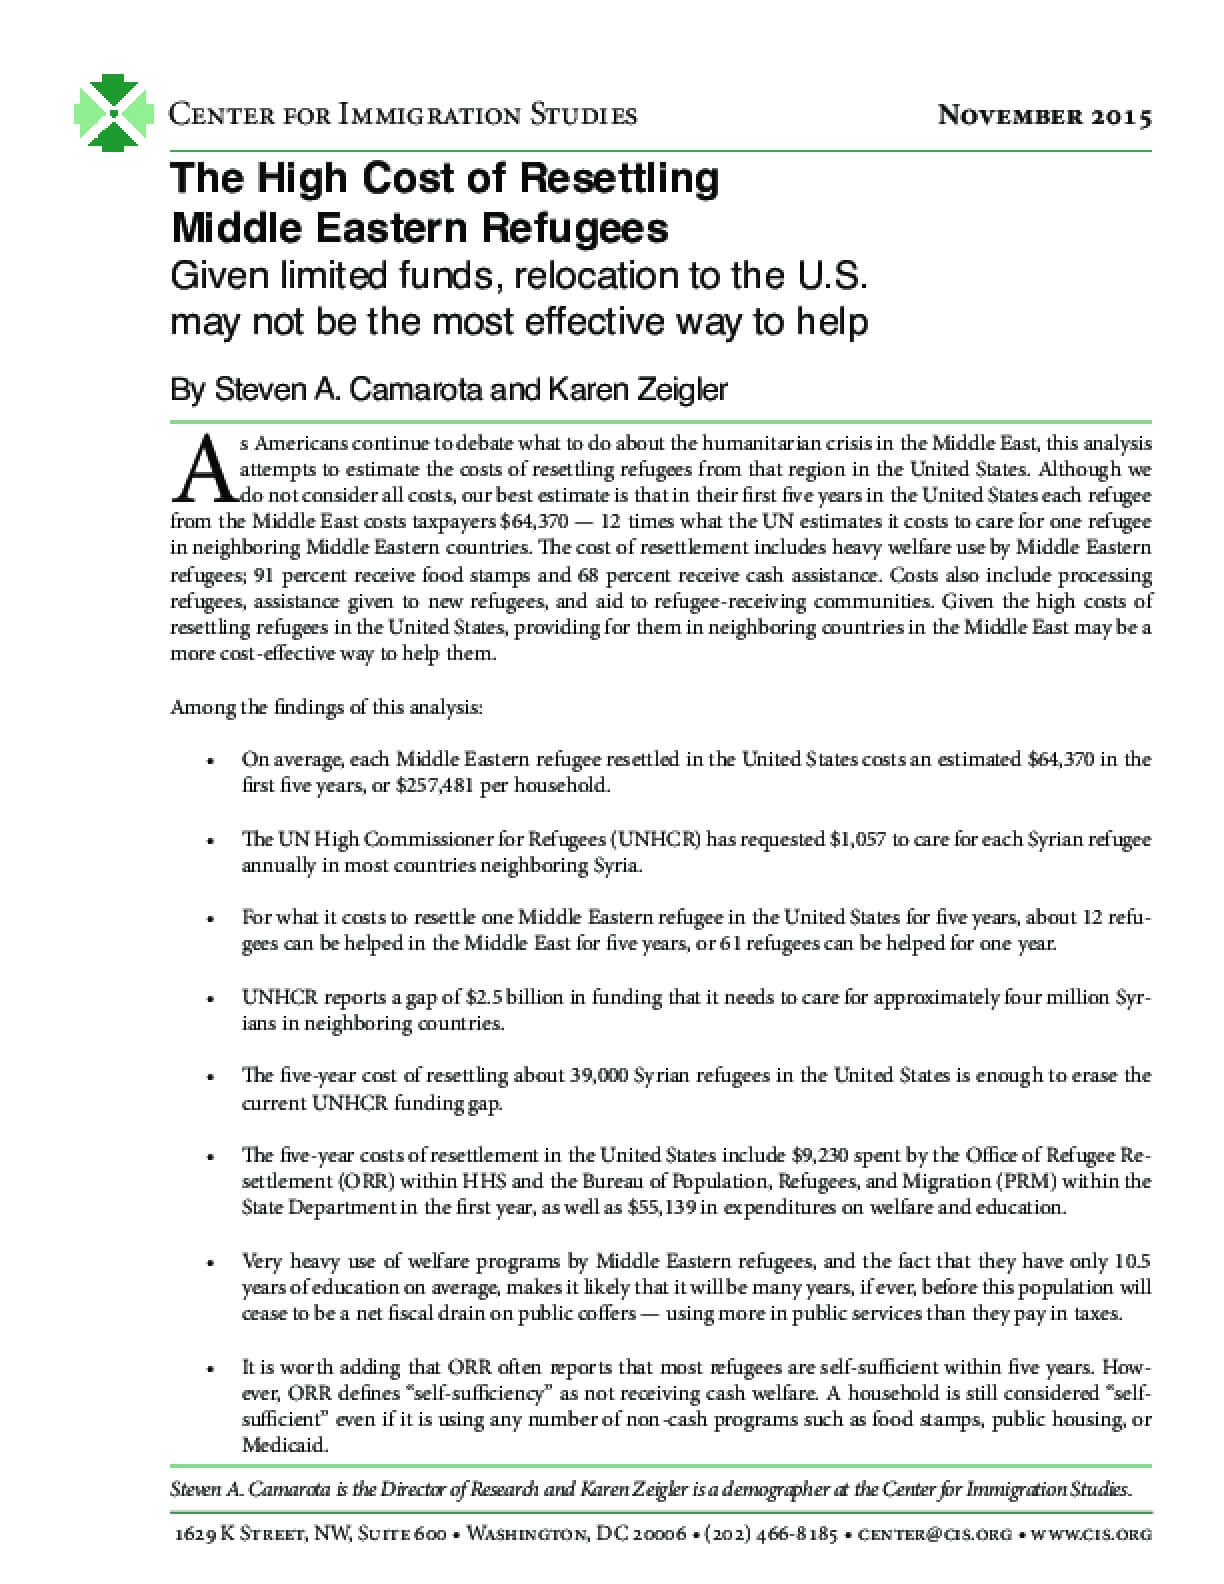 The High Cost of Resettling Middle Eastern Refugees